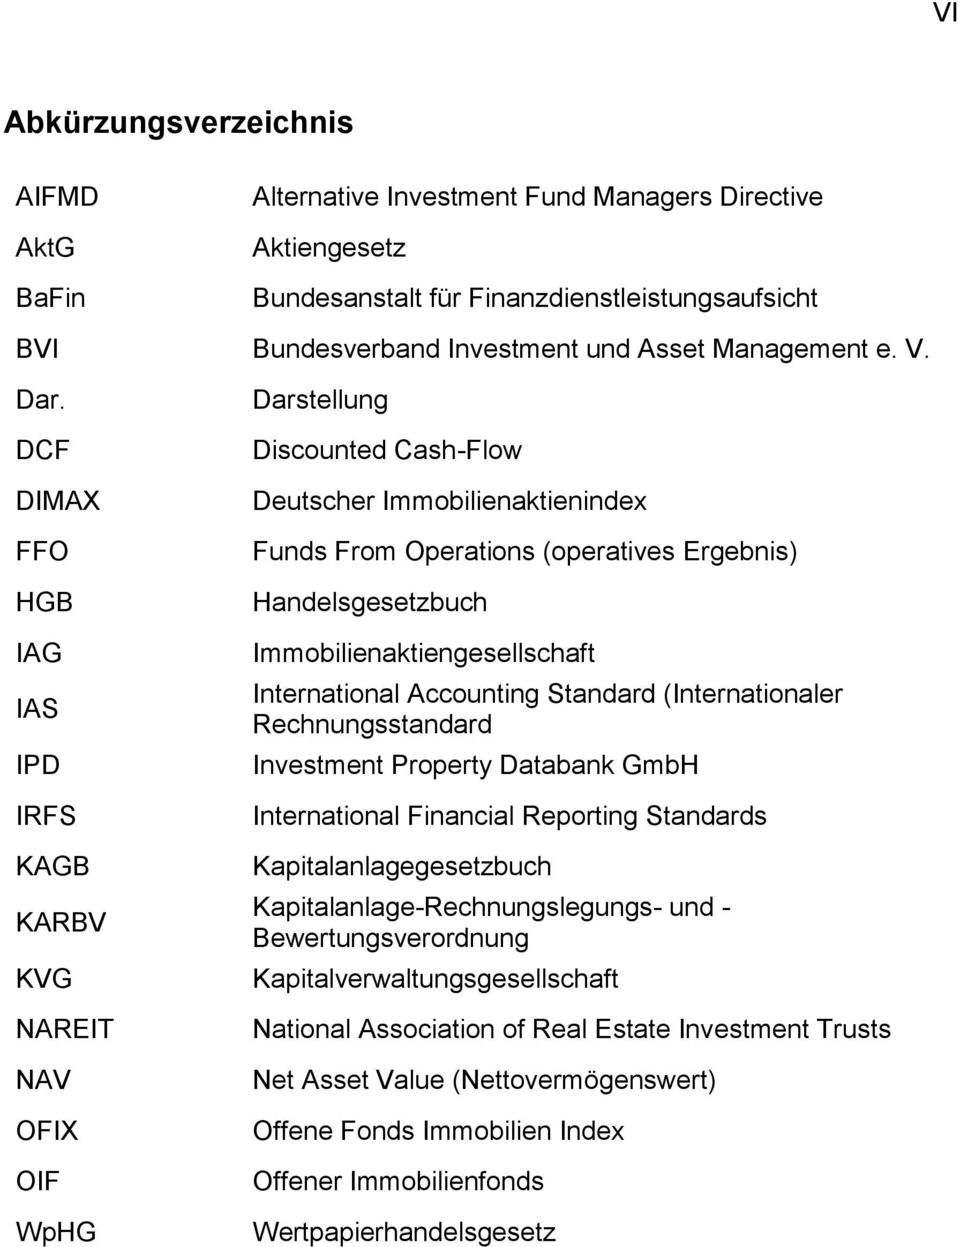 DCF DIMAX FFO HGB IAG IAS IPD IRFS KAGB KARBV KVG NAREIT NAV OFIX OIF WpHG Darstellung Discounted Cash-Flow Deutscher Immobilienaktienindex Funds From Operations (operatives Ergebnis)